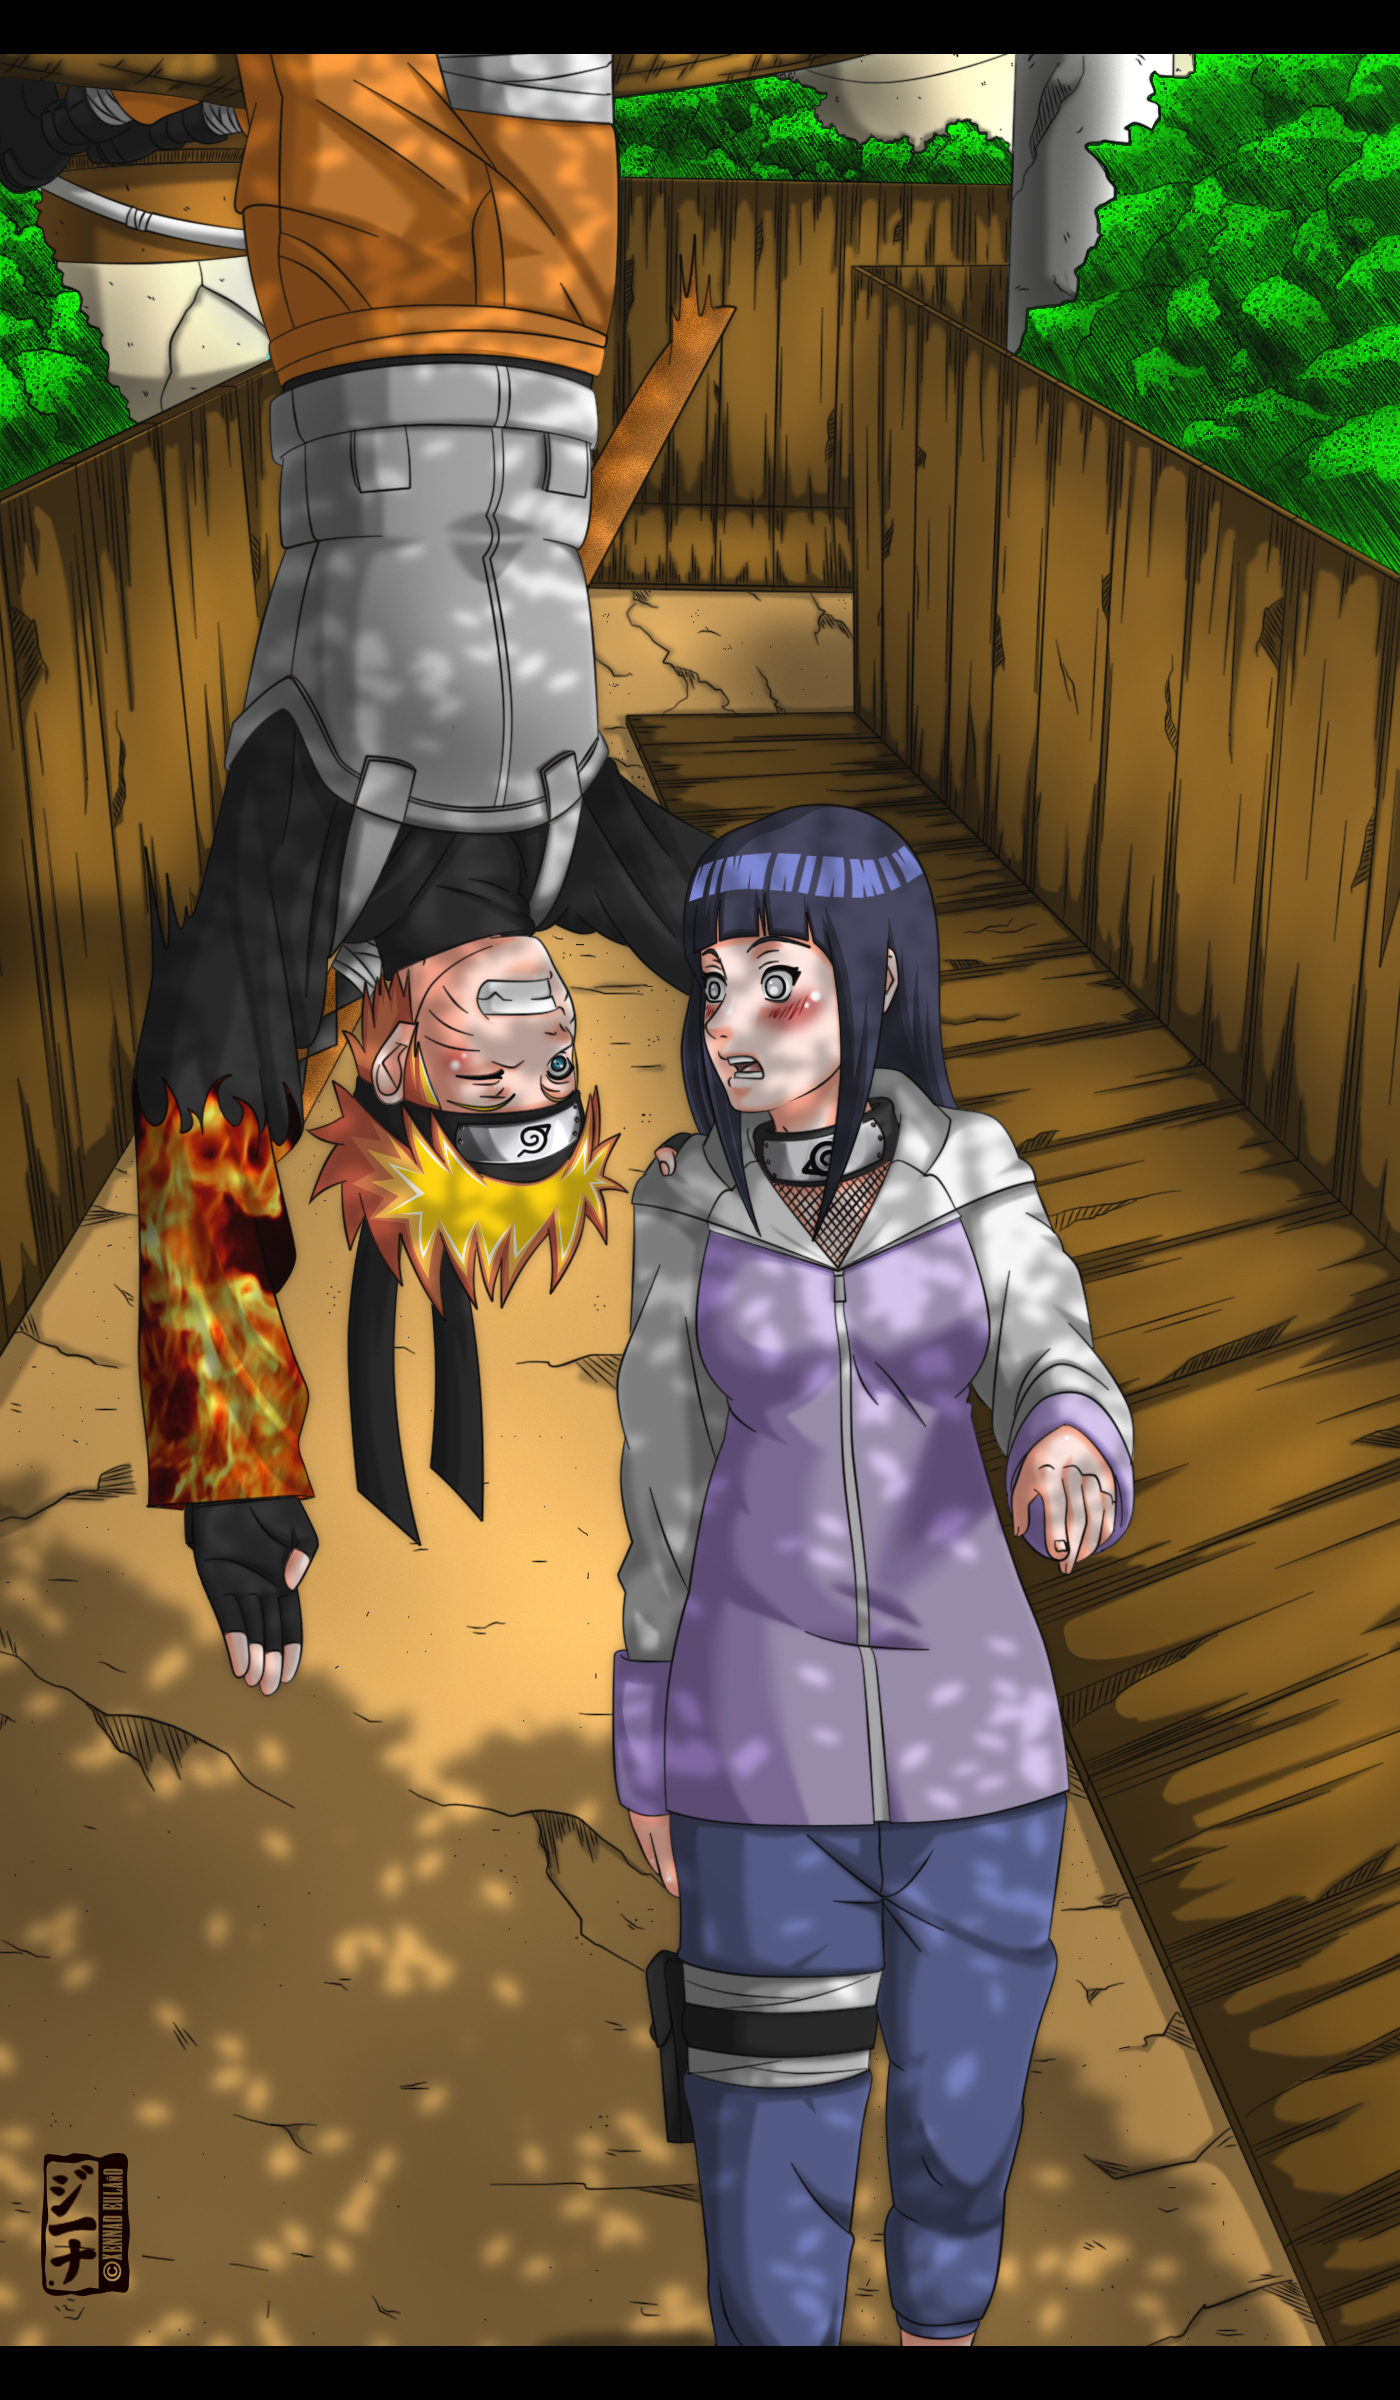 Naruto Couples Images Naruhina Hd Wallpaper And اجمل الصور لناروتو وهيناتا 1708836 Hd Wallpaper Backgrounds Download